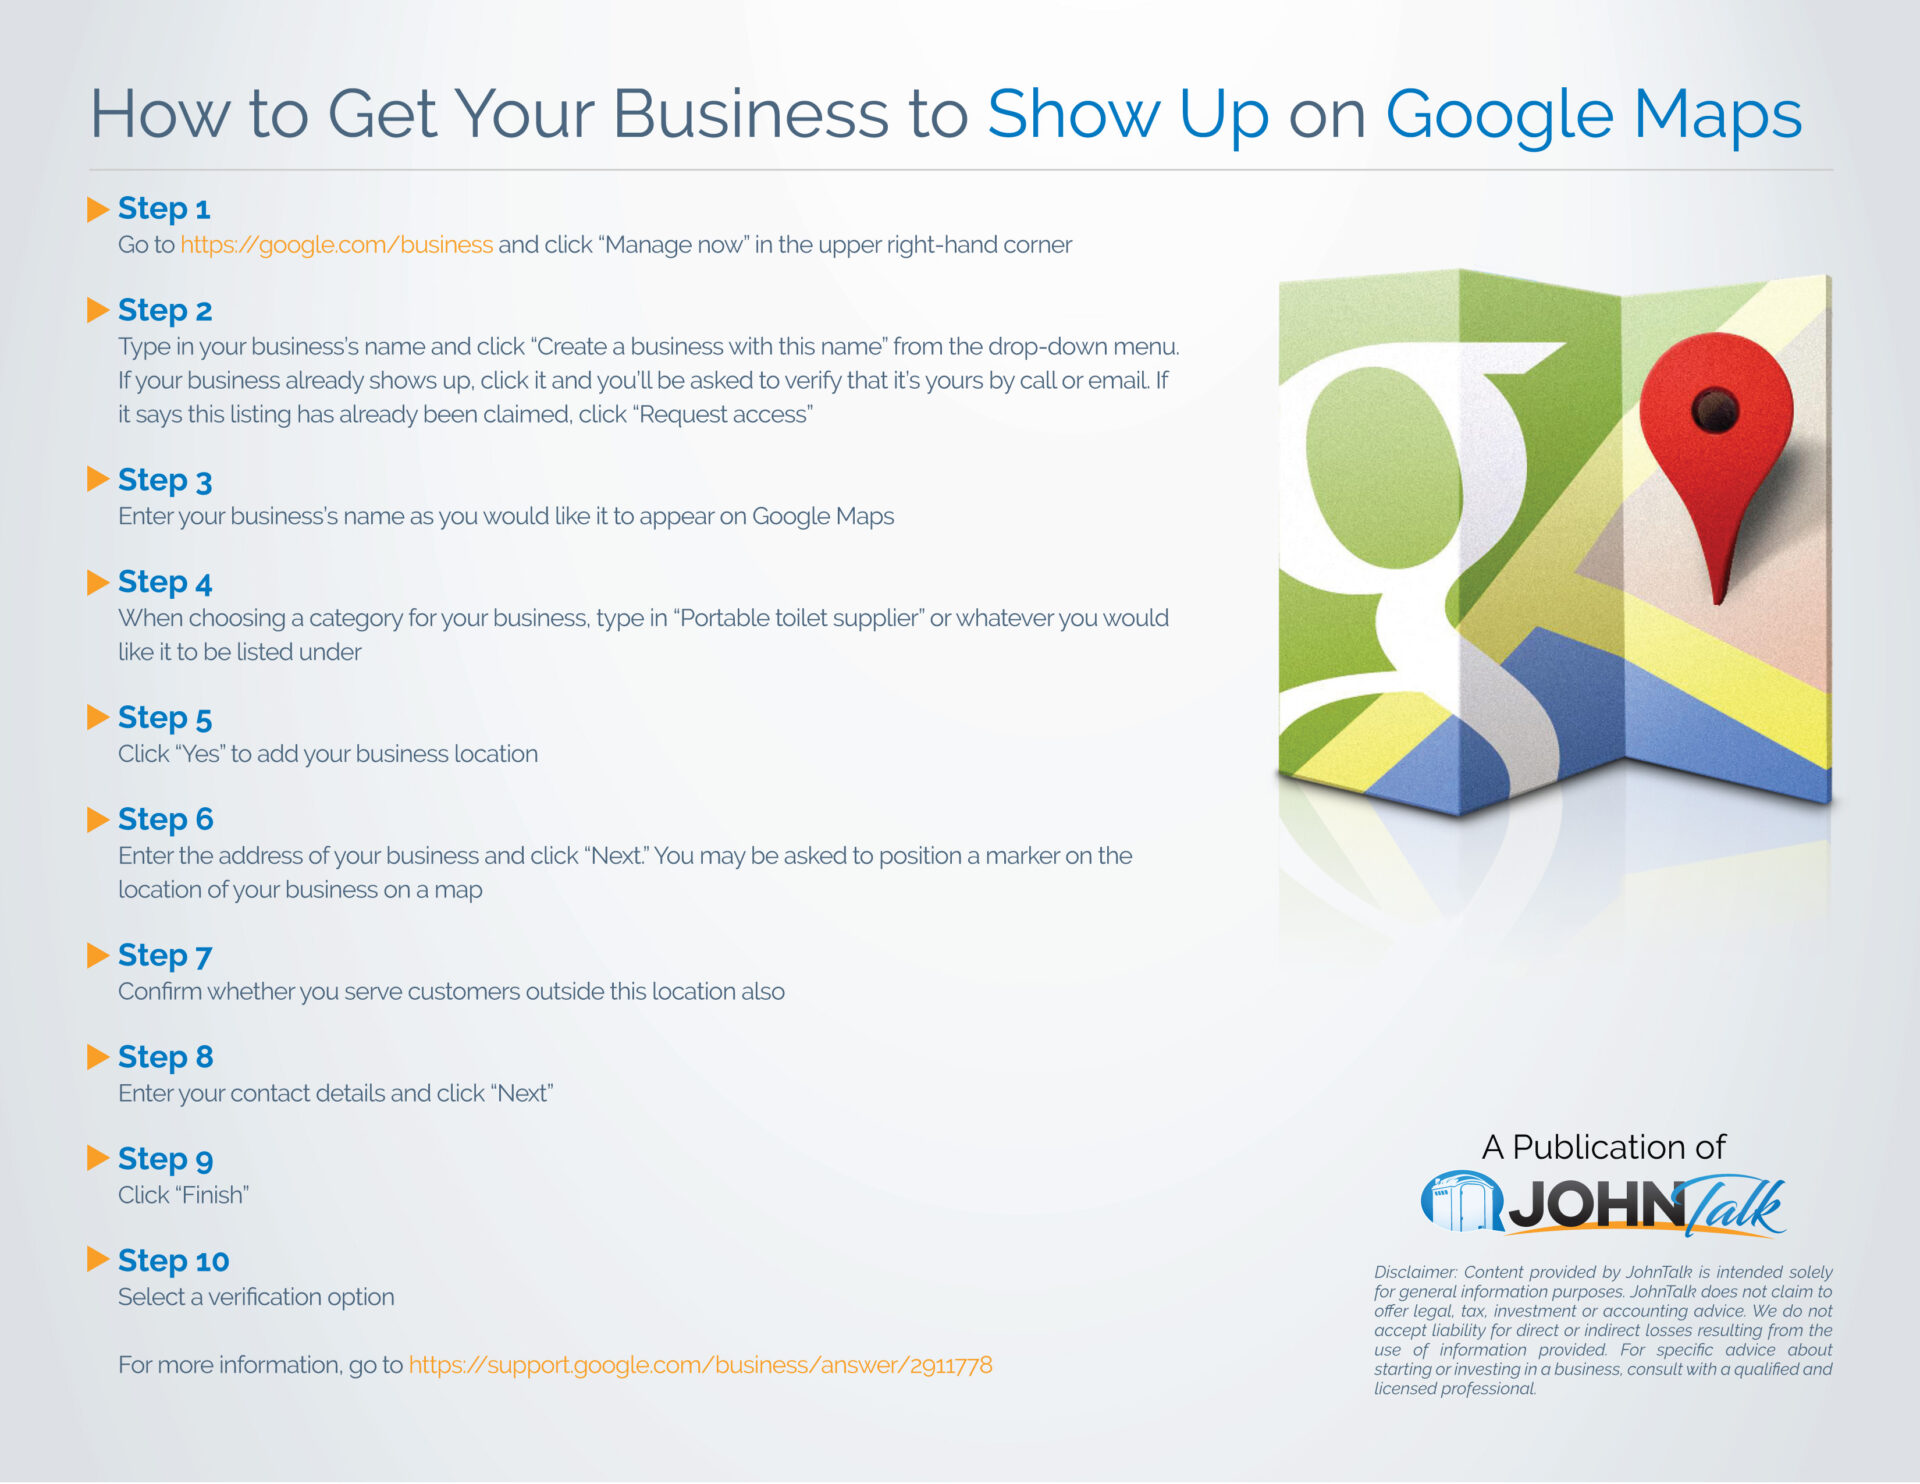 Hot to Get Your Business to Show Up on Google Maps